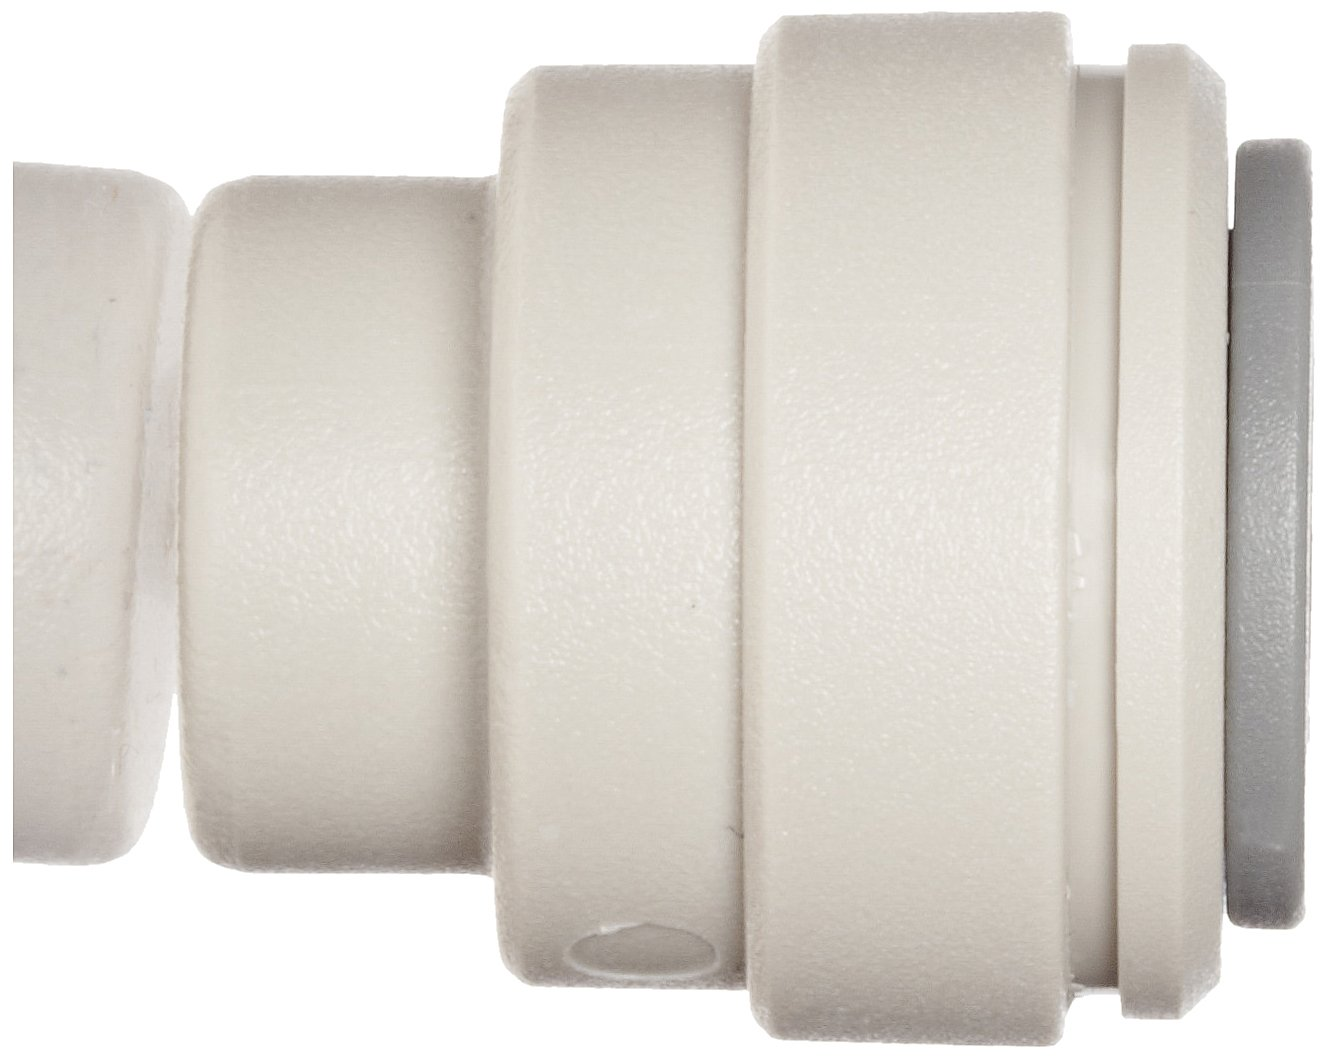 1//4 Tube OD John Guest Acetal Copolymer Tube Fitting End Stop Pack of 10